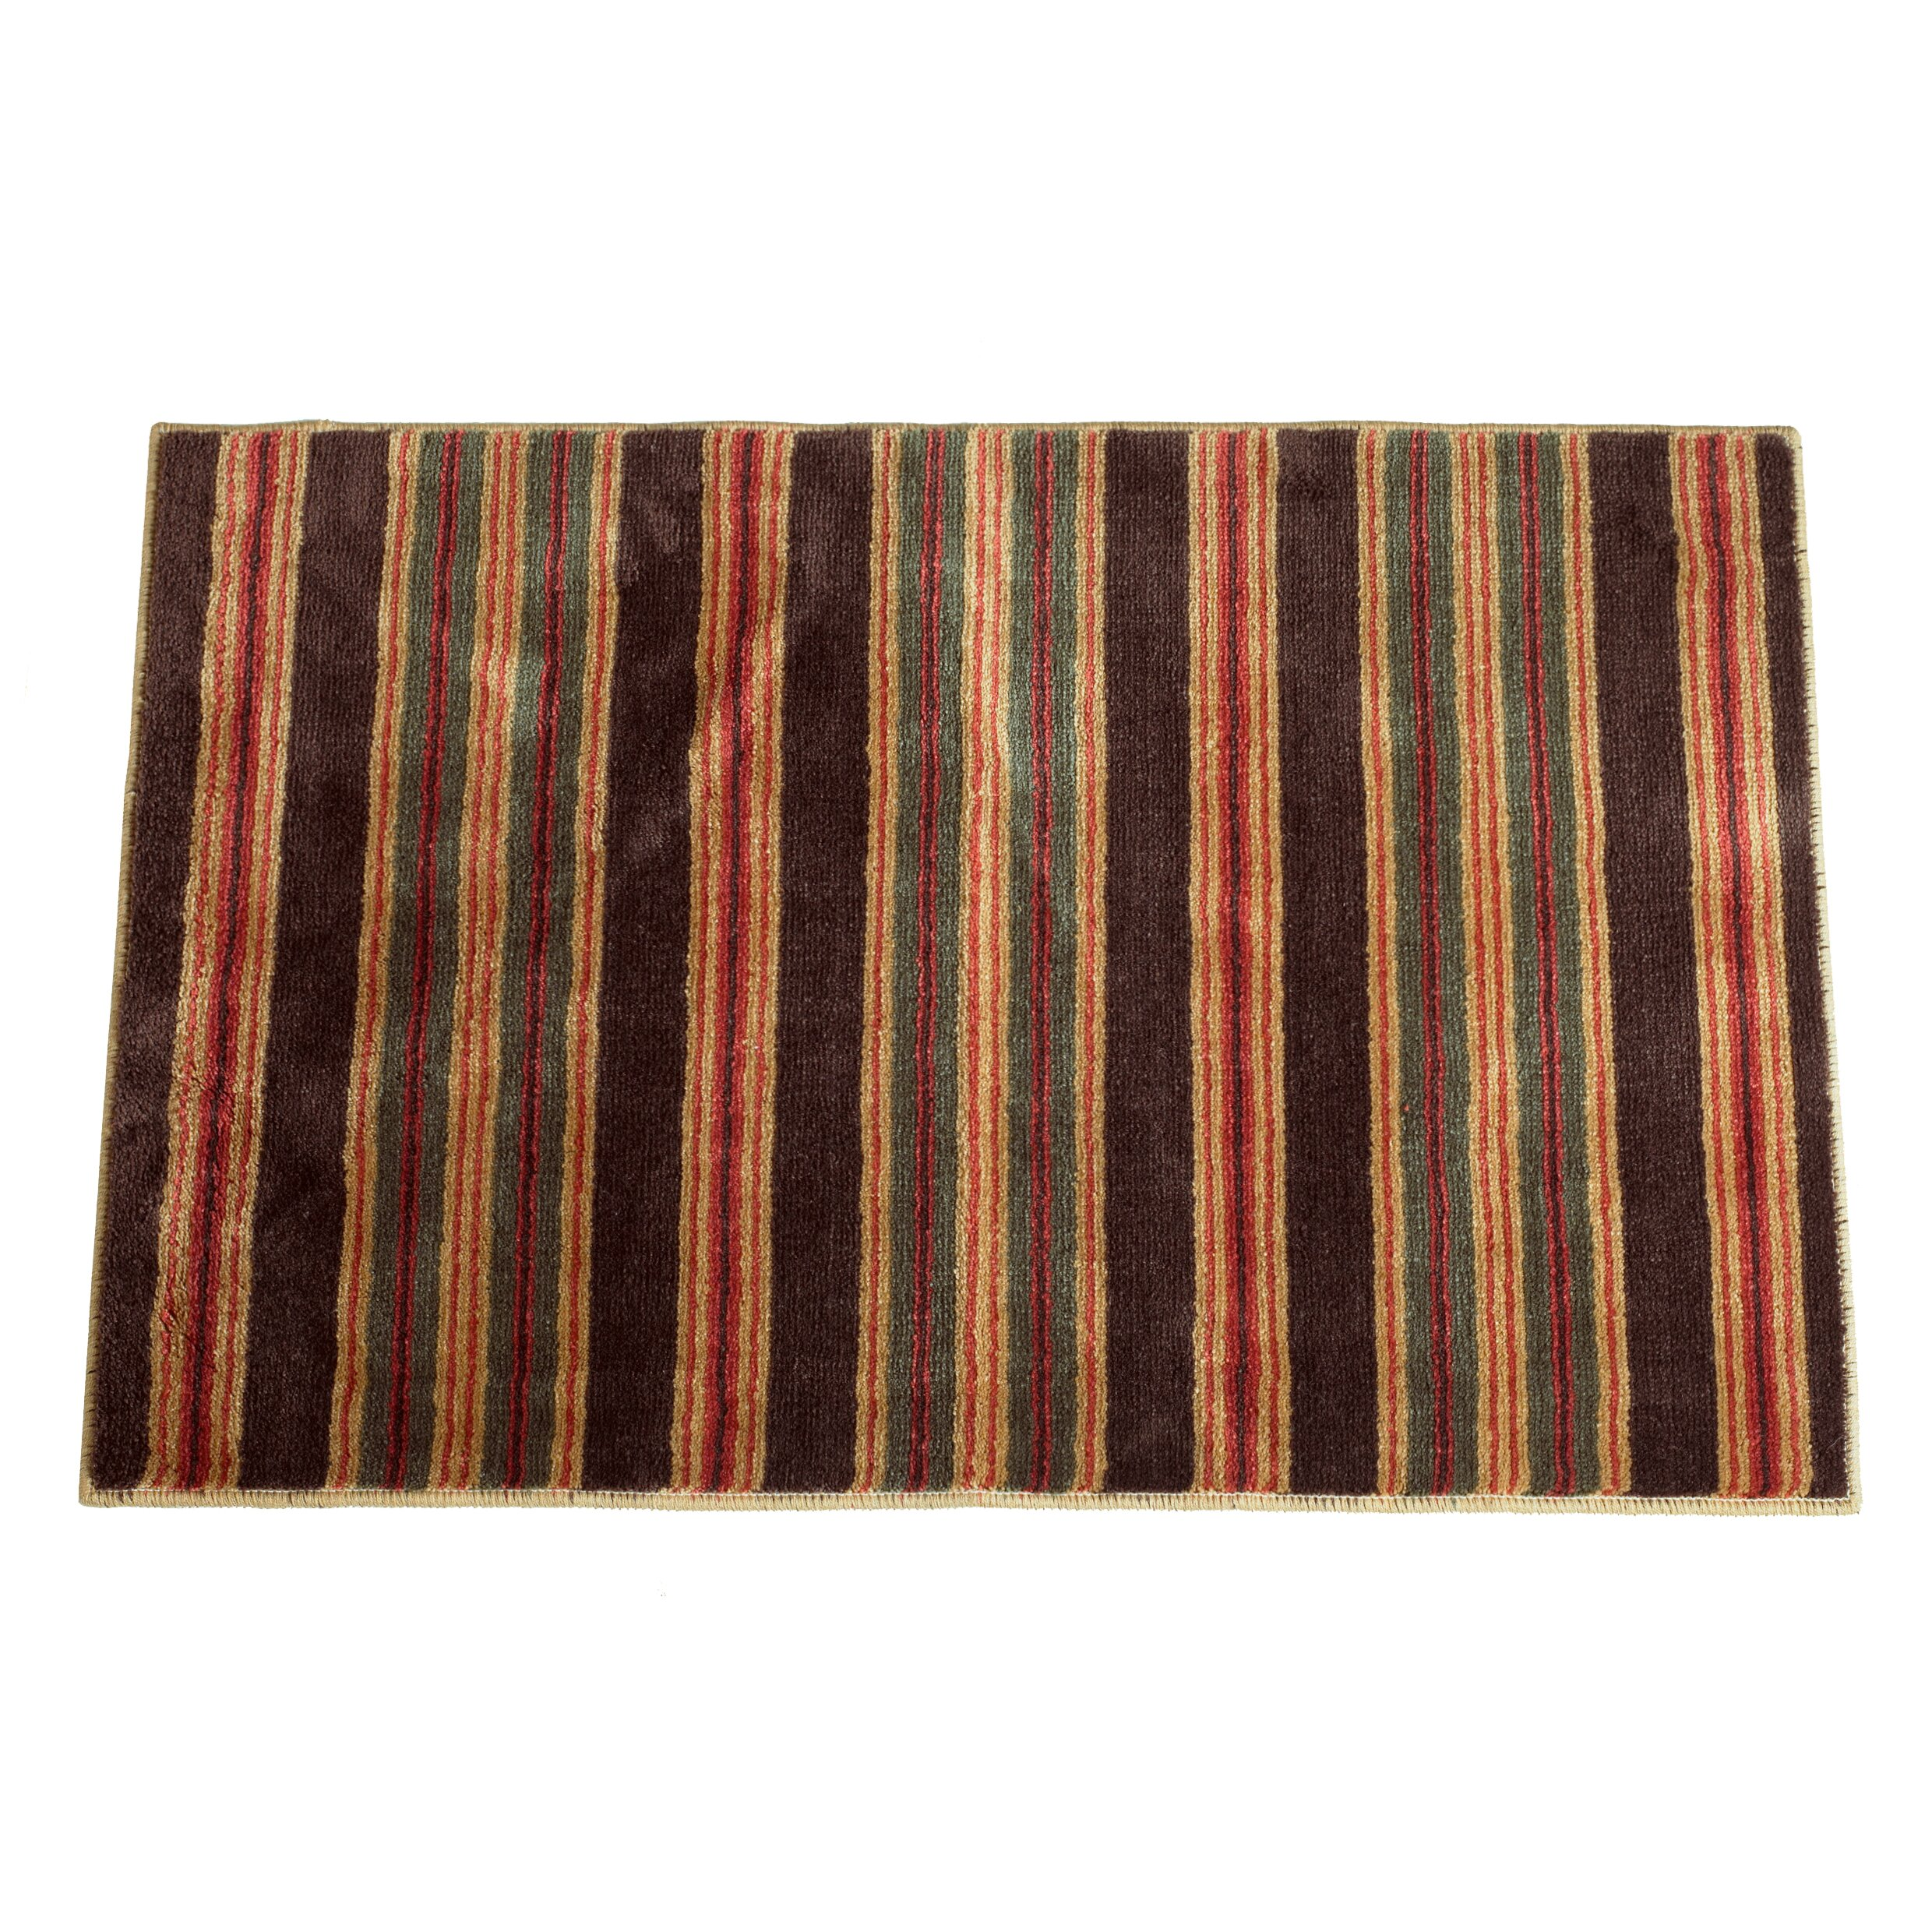 Rustic Rug Country: High Country Rustic Red/Tan Area Rug